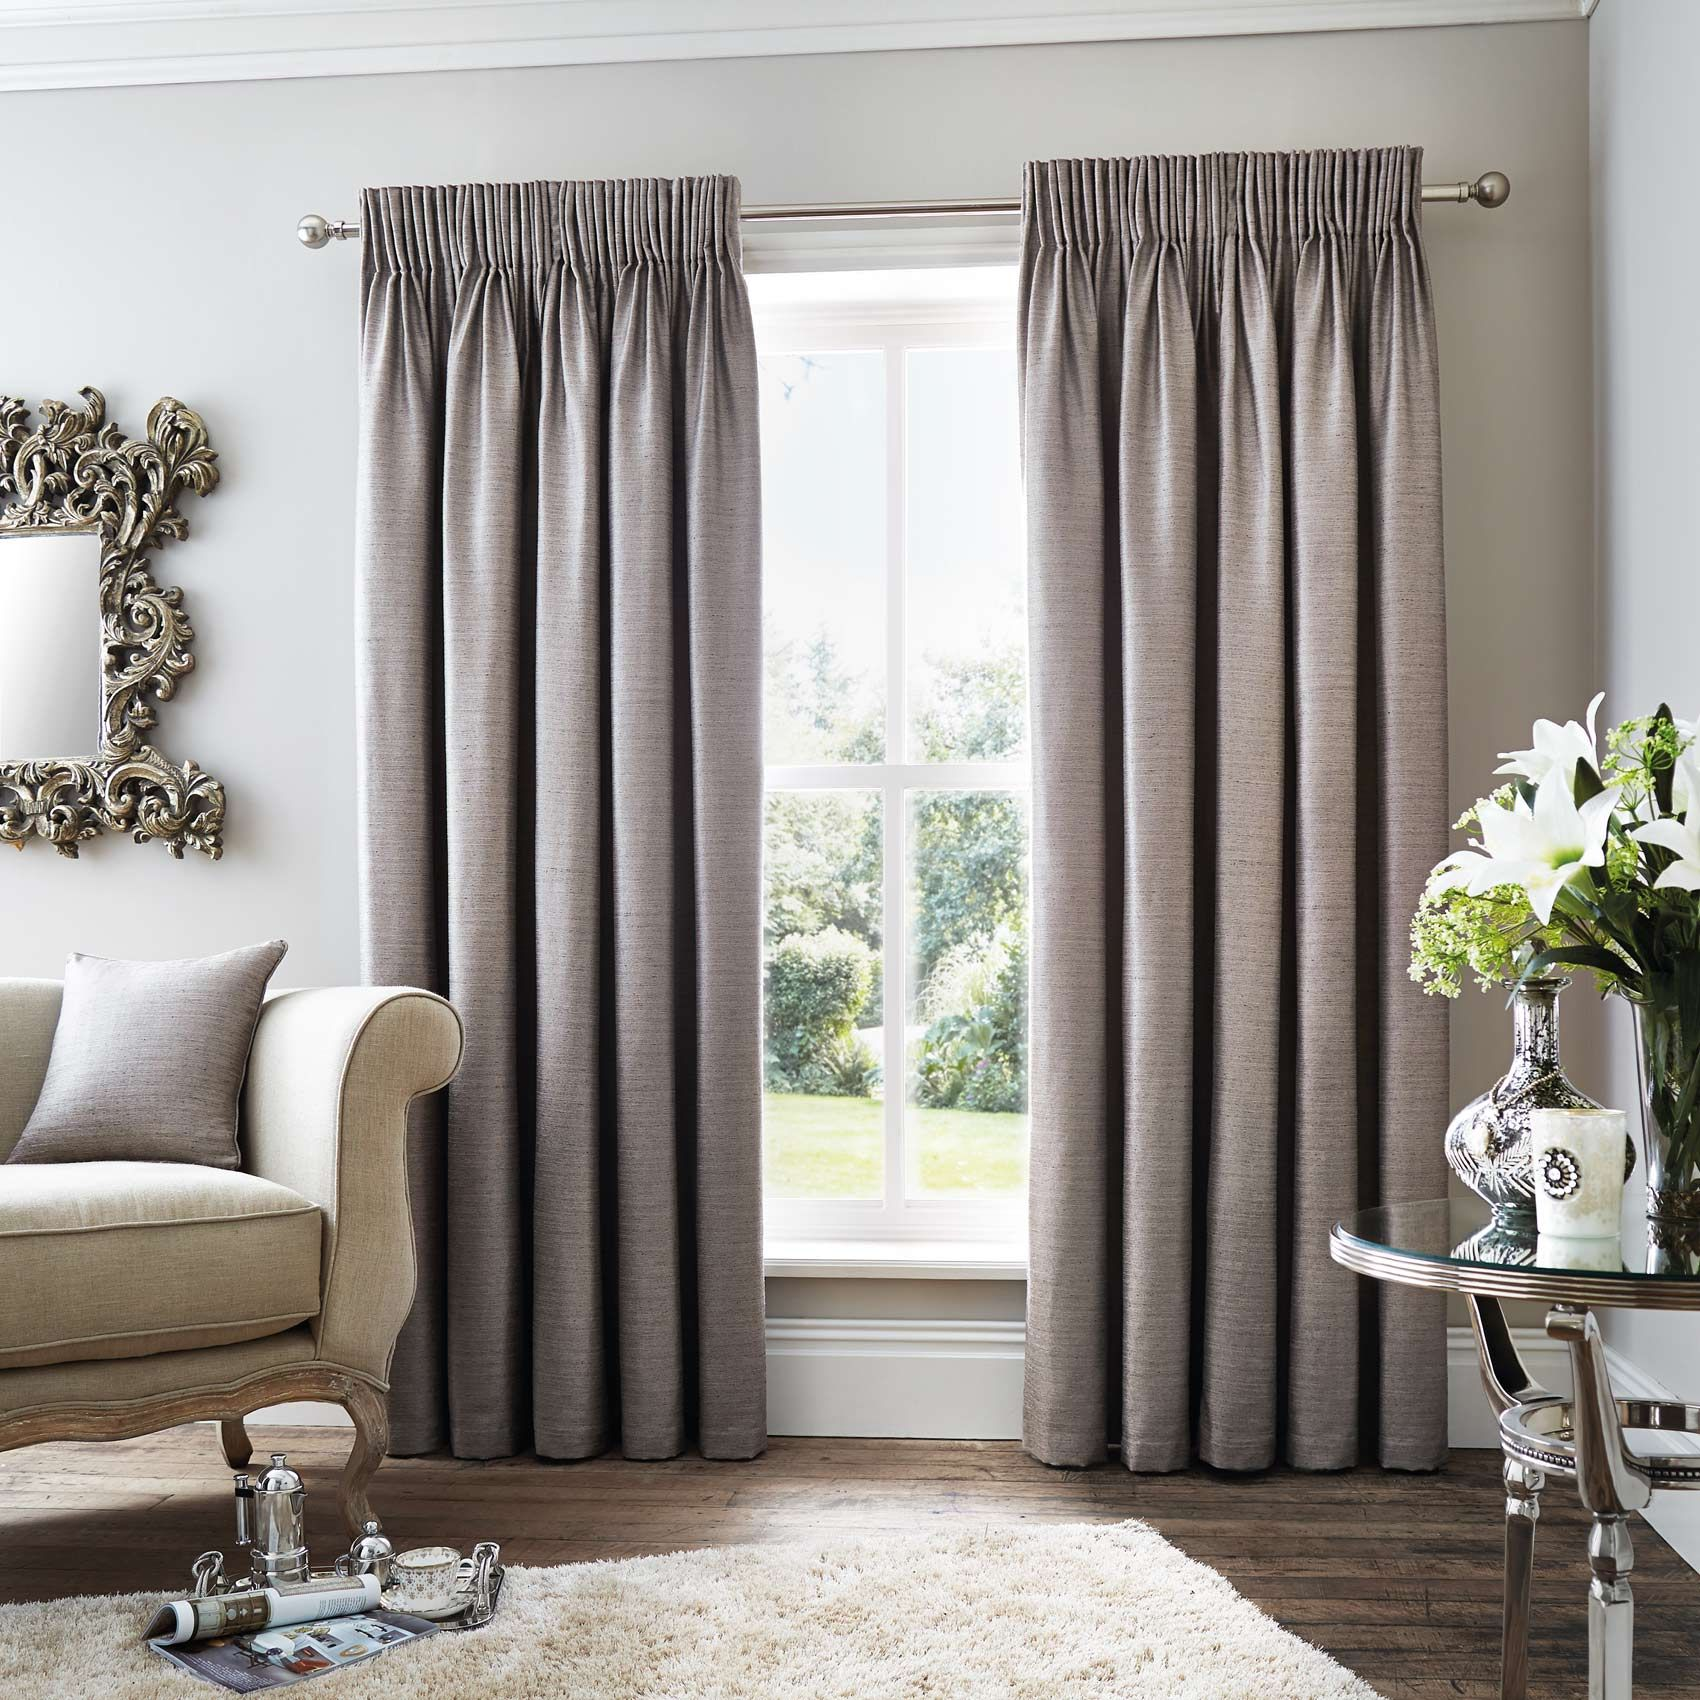 Rimini Lined 6 Pencil Pleat Curtains